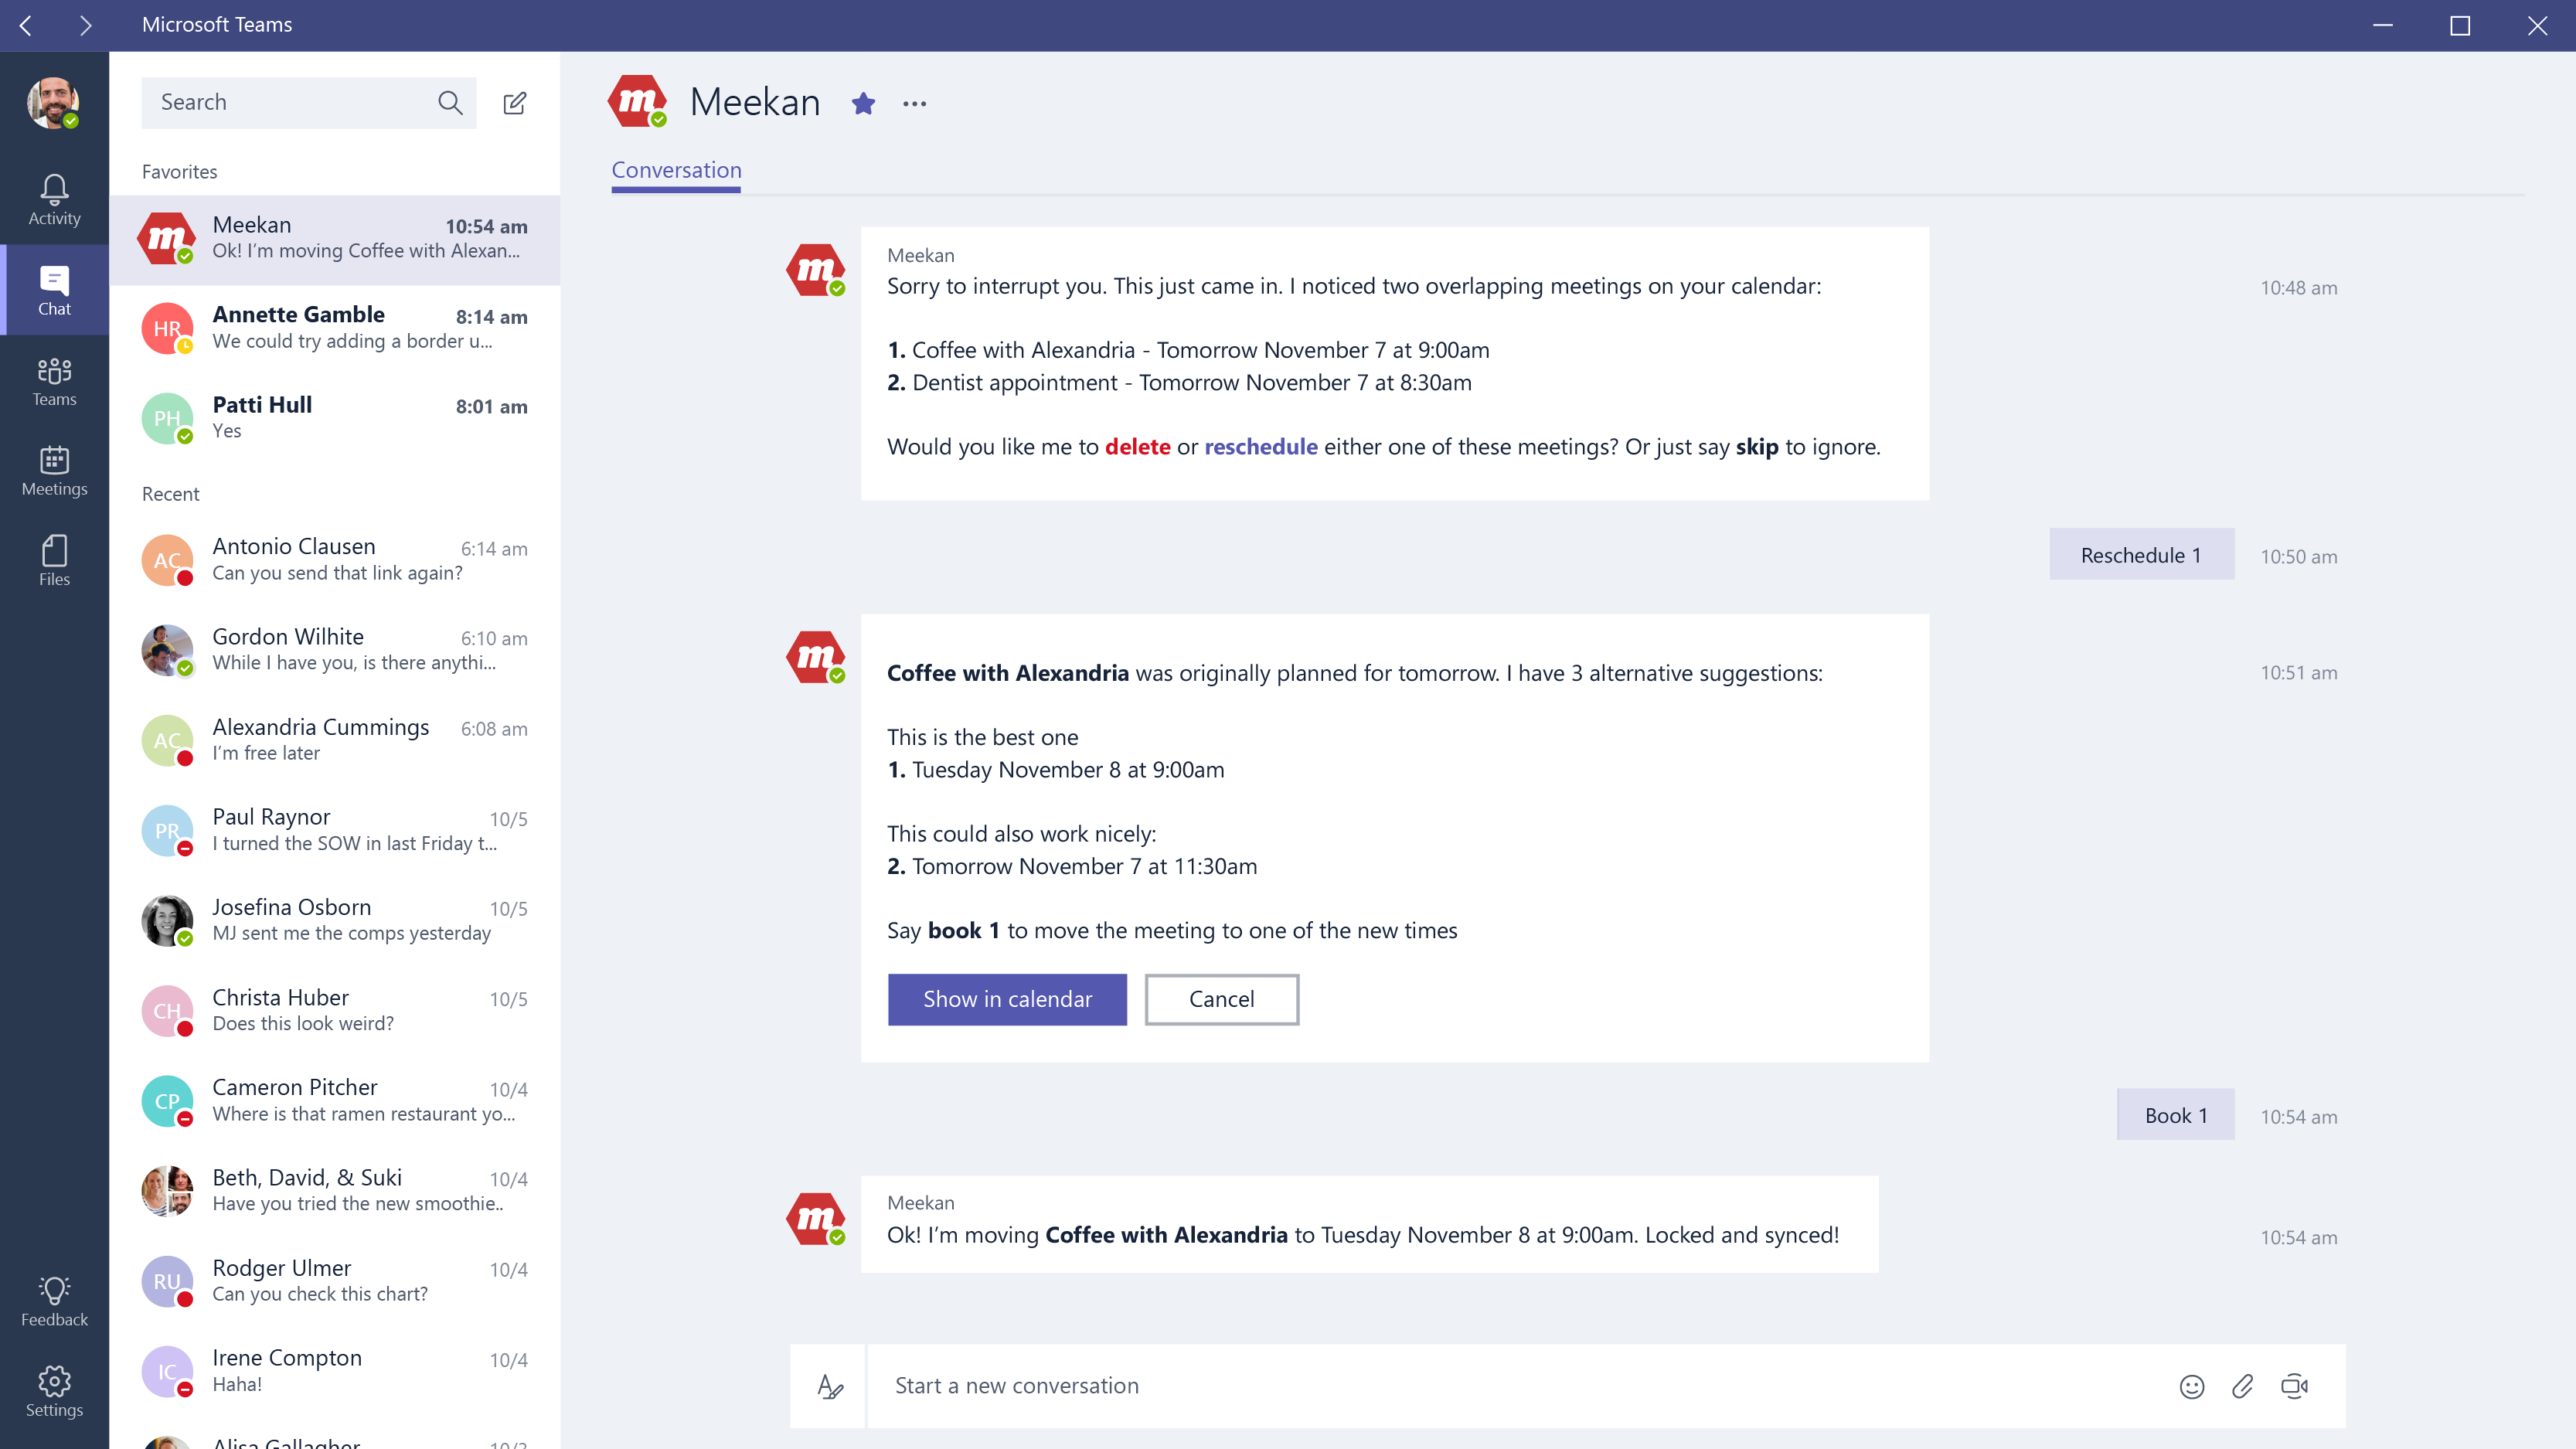 Screenshot of bots in Microsoft Teams